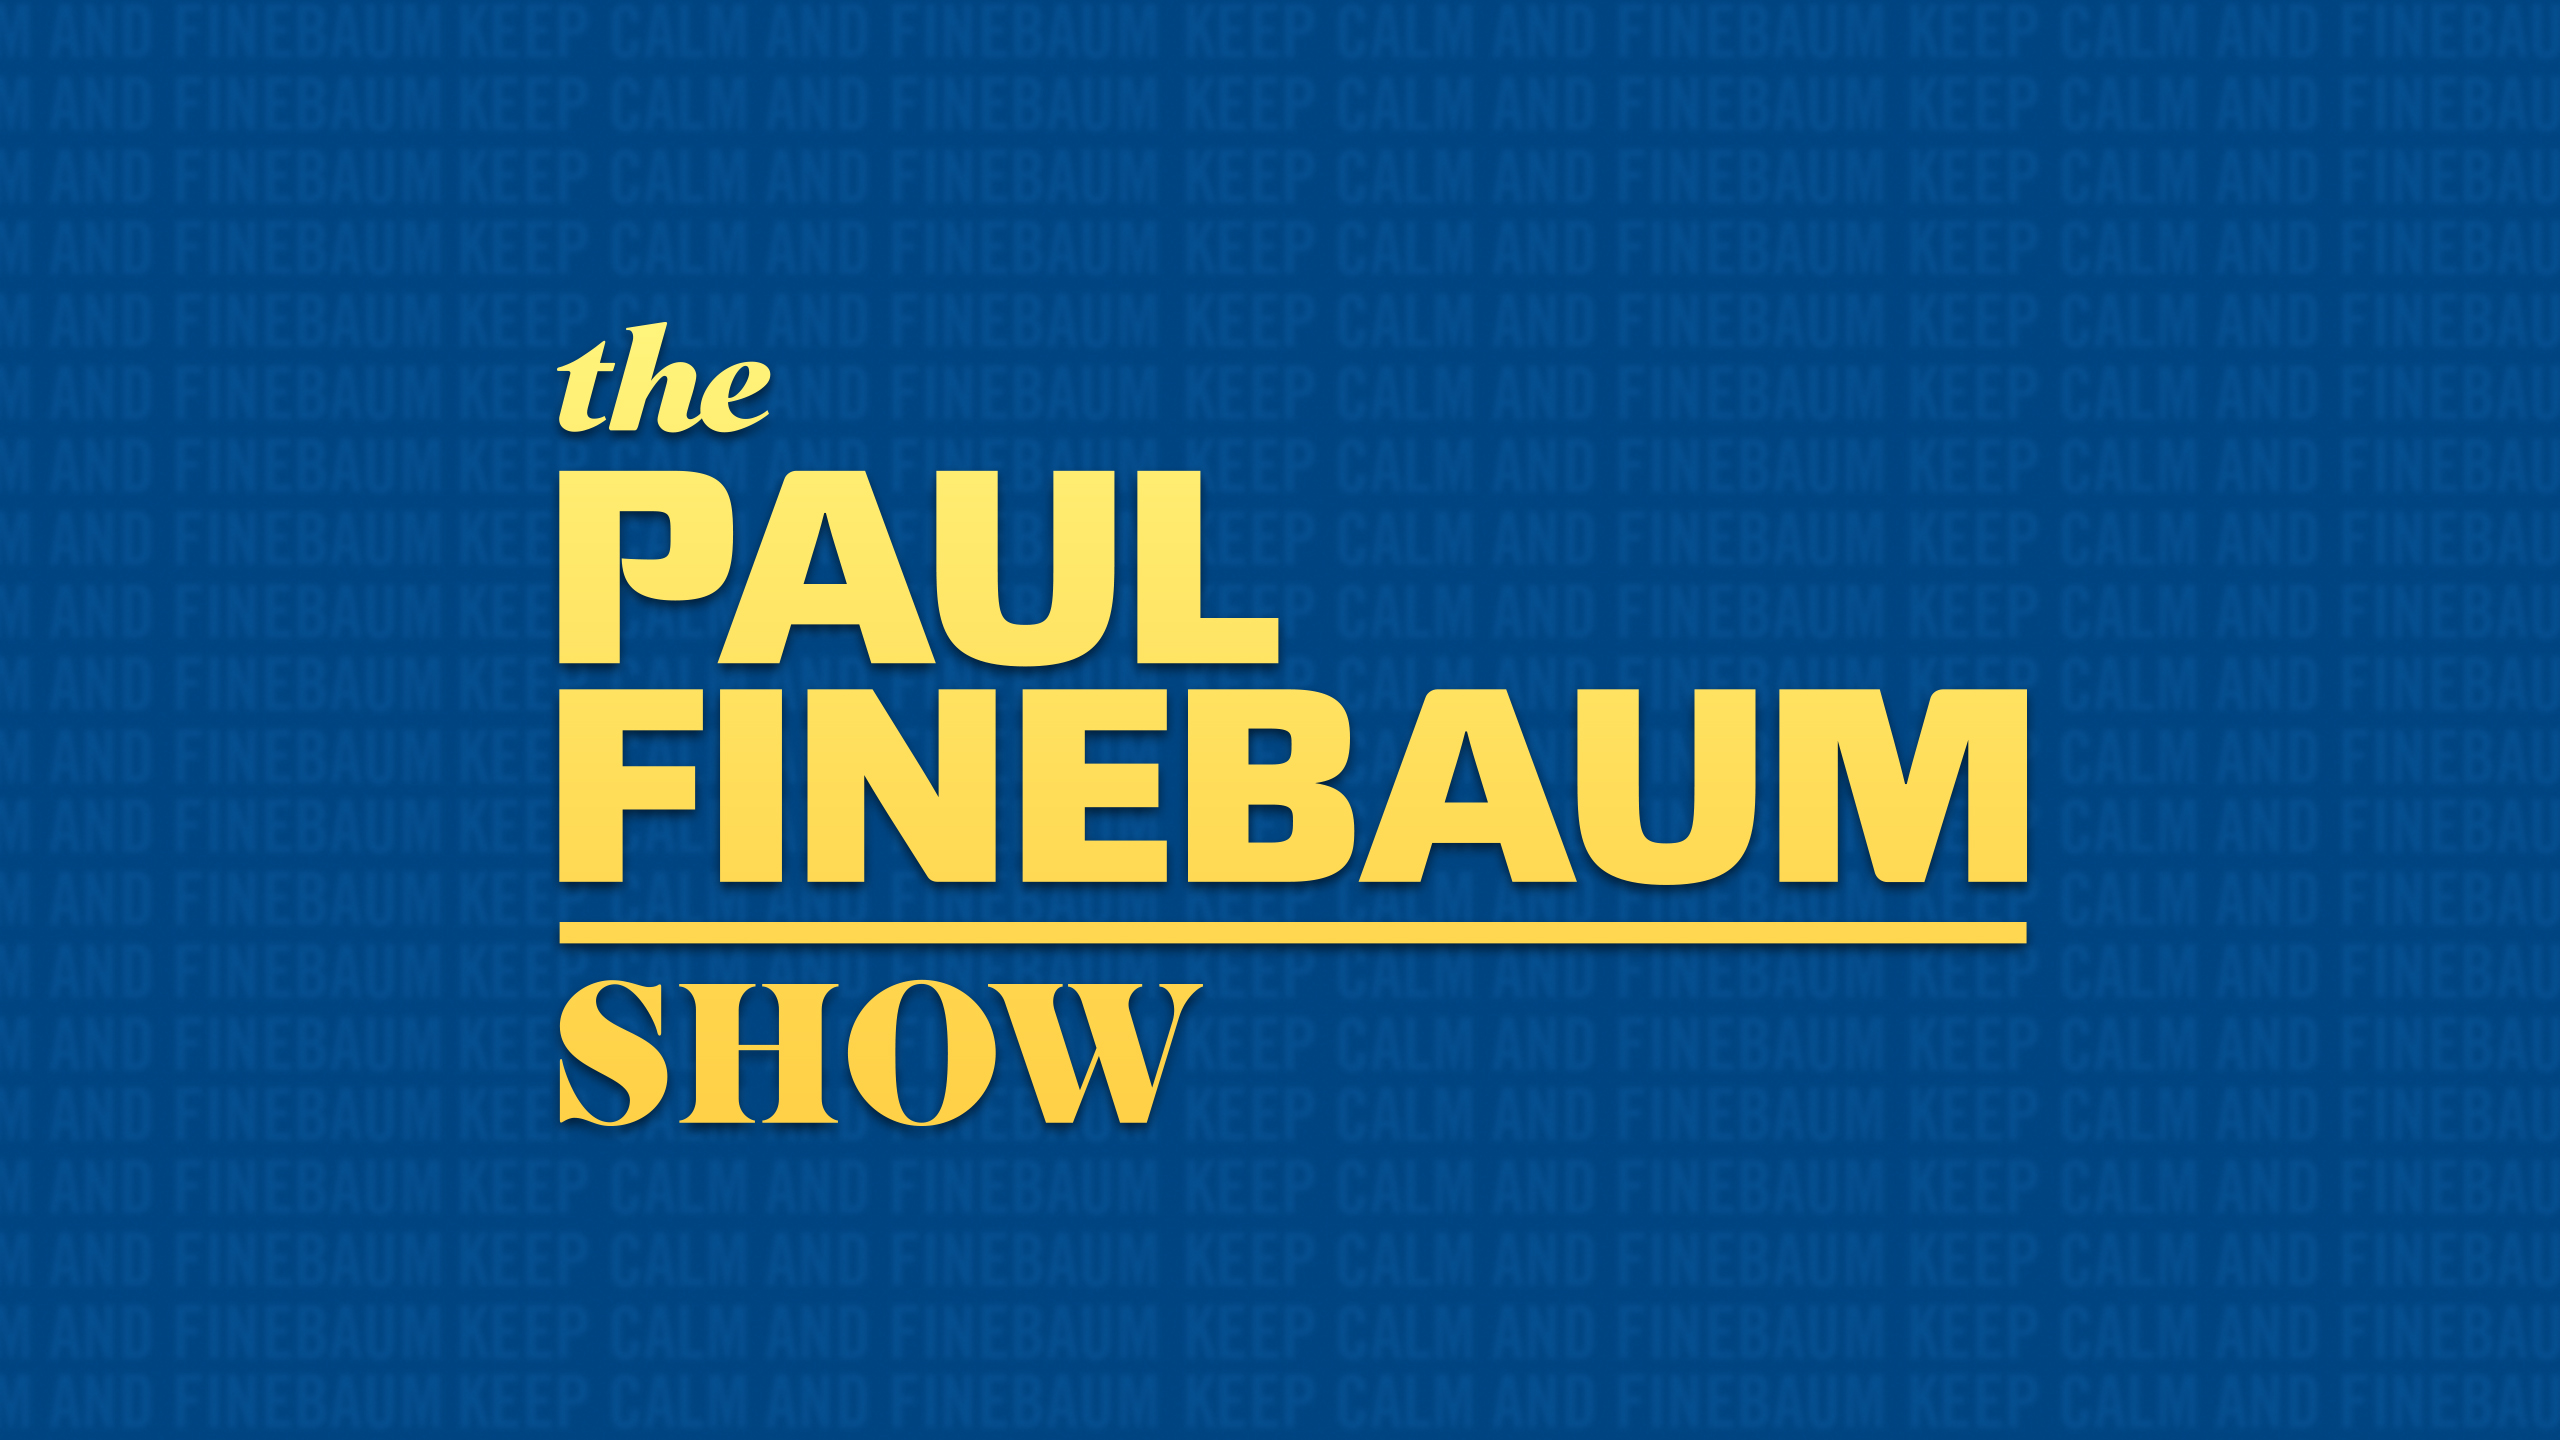 Thu, 9/20 - The Paul Finebaum Show Presented by Pilot Flying J